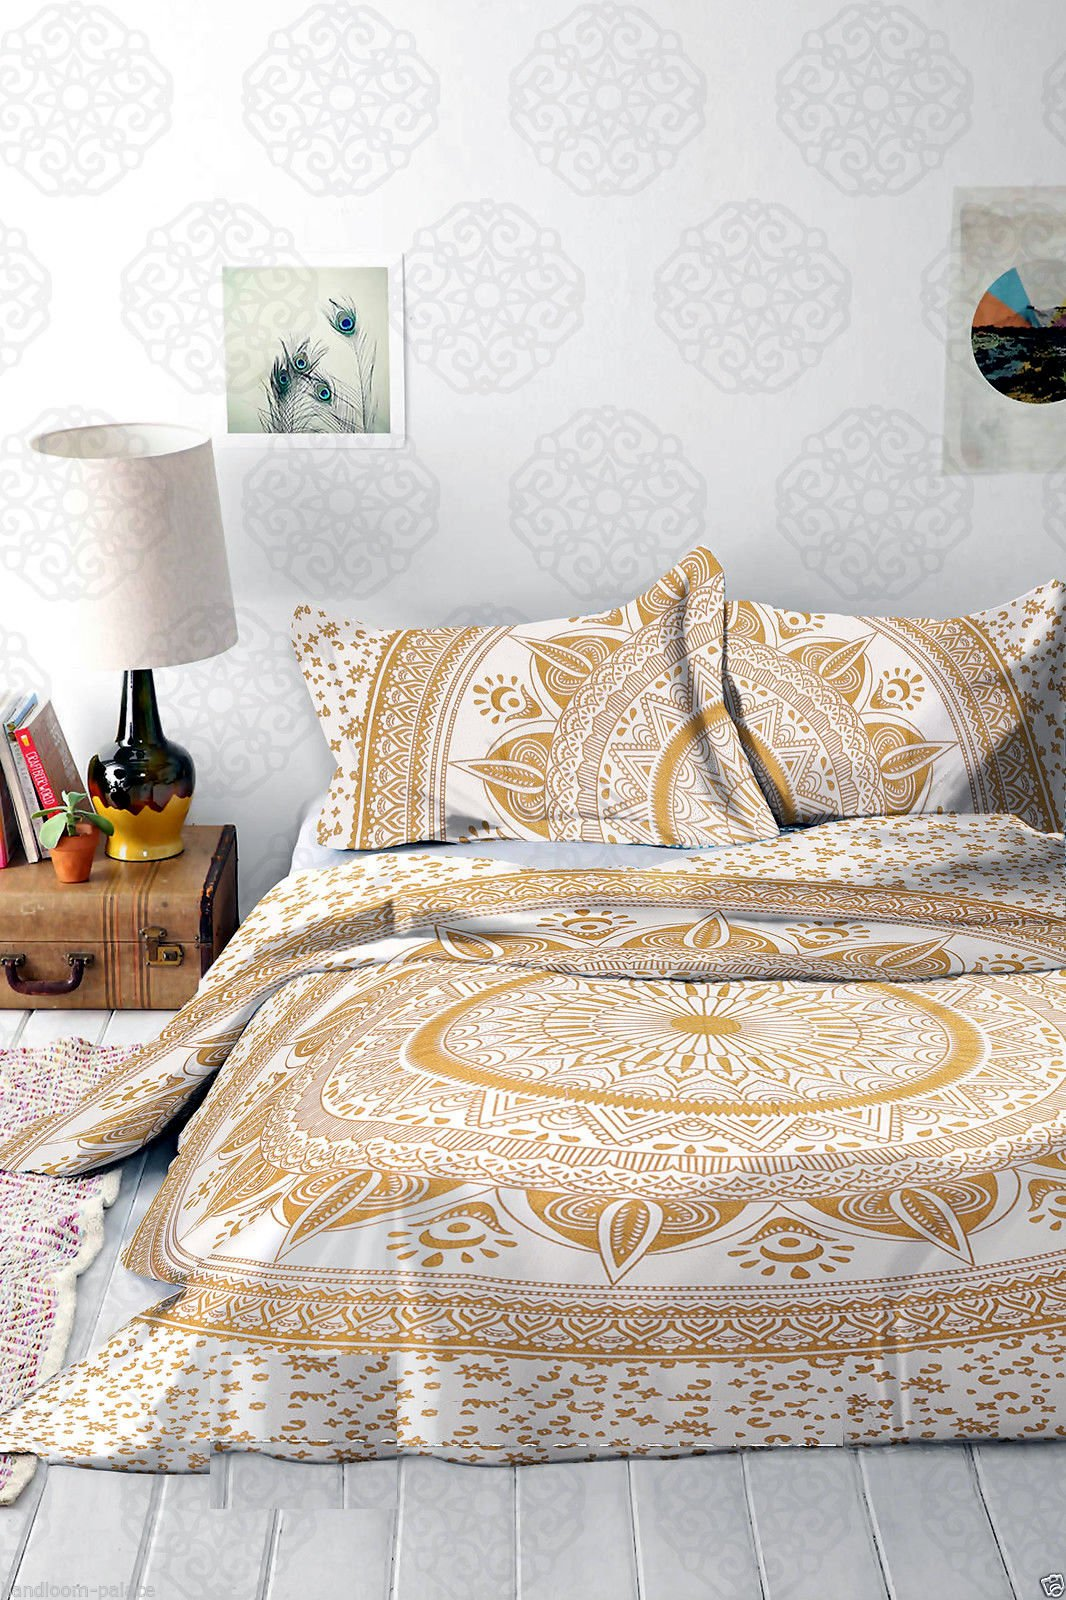 4 PC Set Gold Ombre Doona Bedding Boho Indian Duvet Cover Reversible Doona Cover with 1 pc Tapestry Queen Size Bedsheet Elephant Mandala Wall Hanging Beach Throw & Pillow Covers Hippie (Multi)